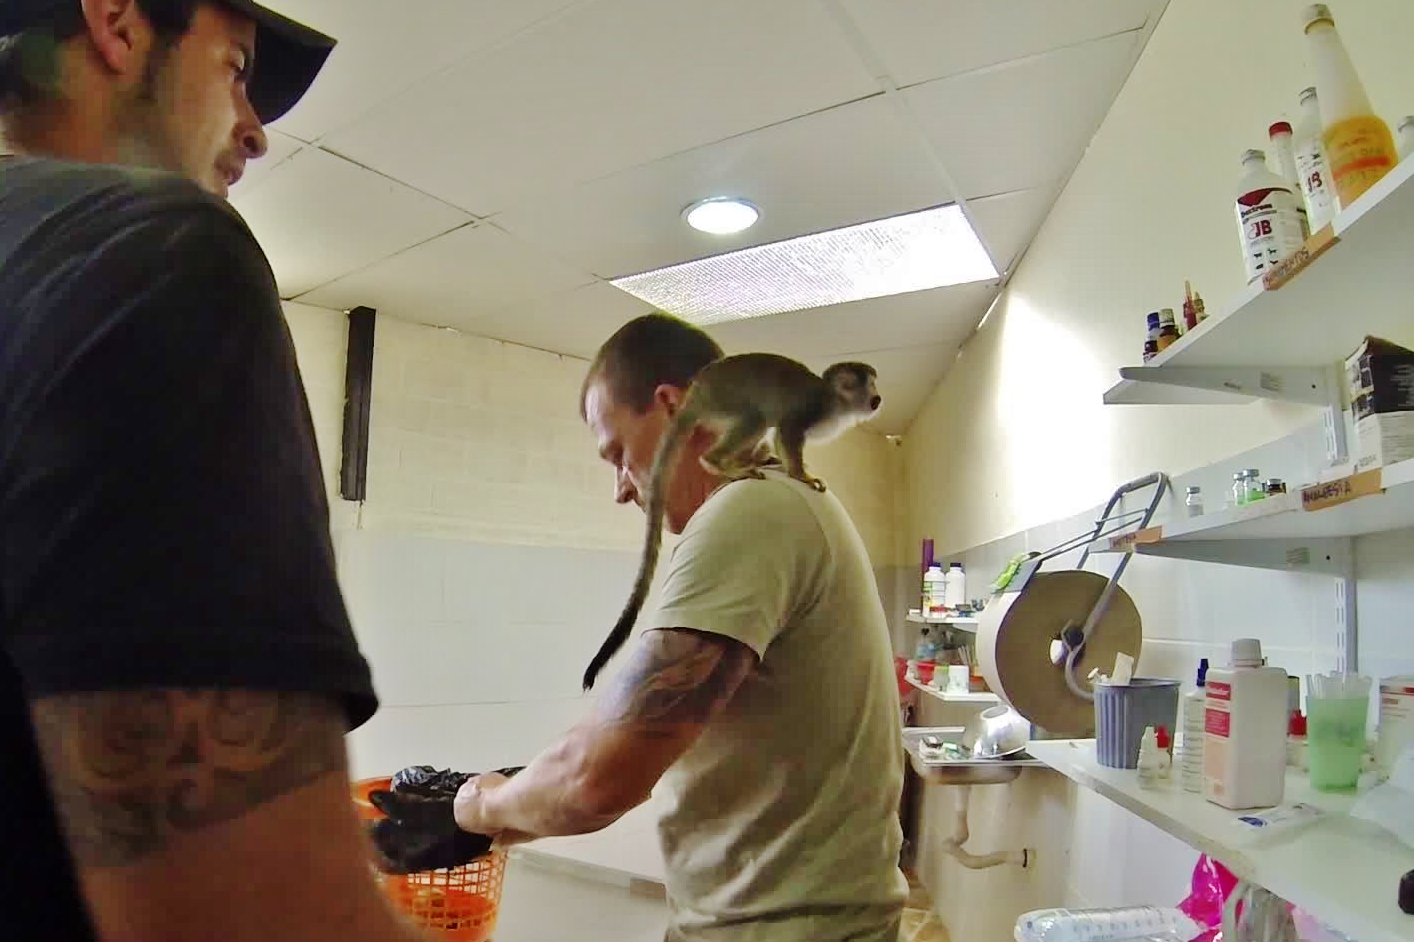 Tore preps parasite medication for a young Squirrel Monkey in the vet clinic